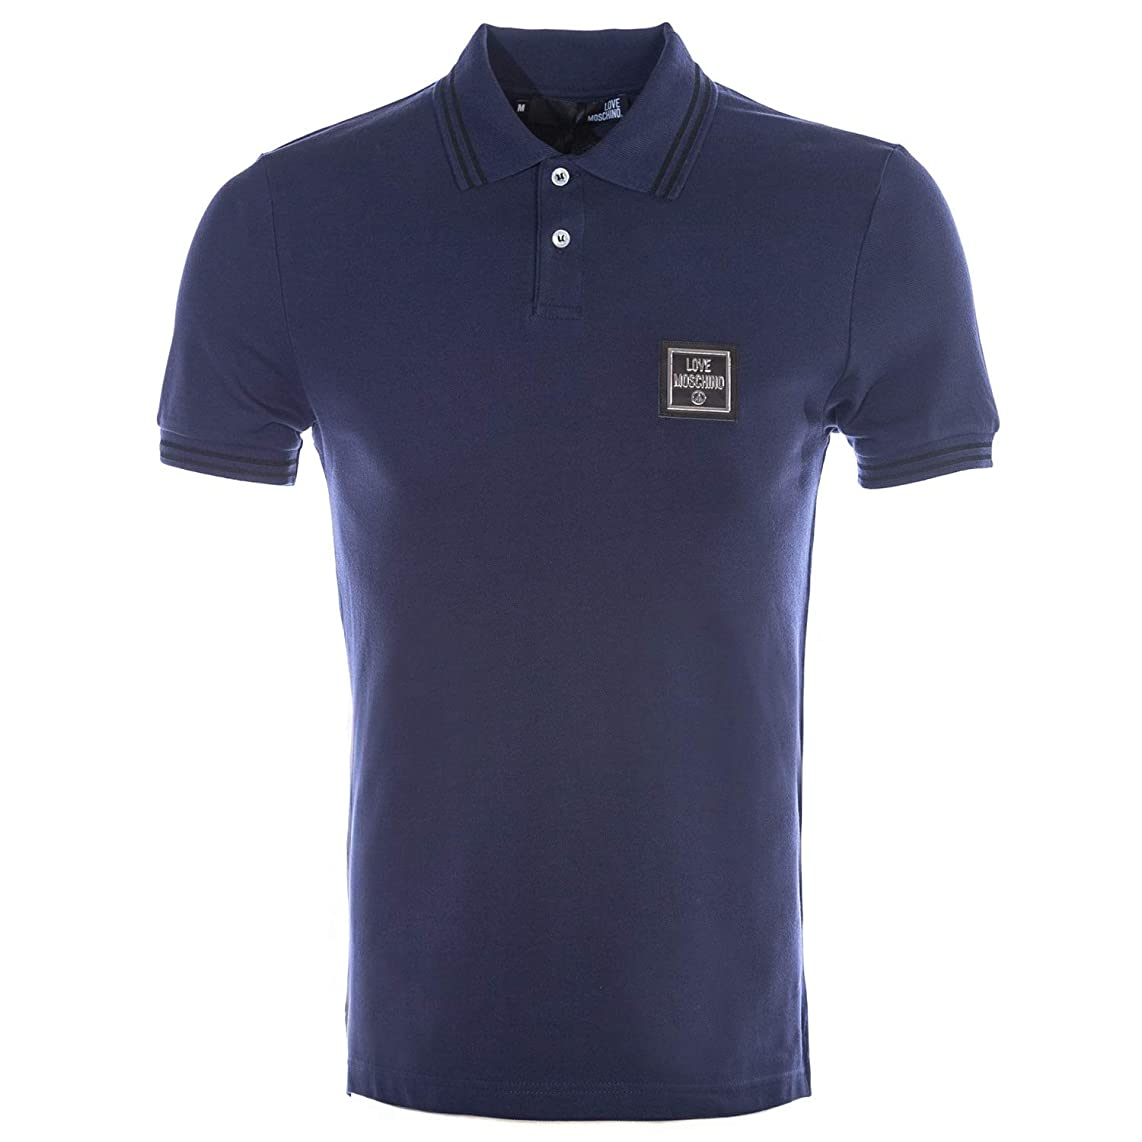 MOSCHINO Love Square Small Badge Polo Shirt in Navy